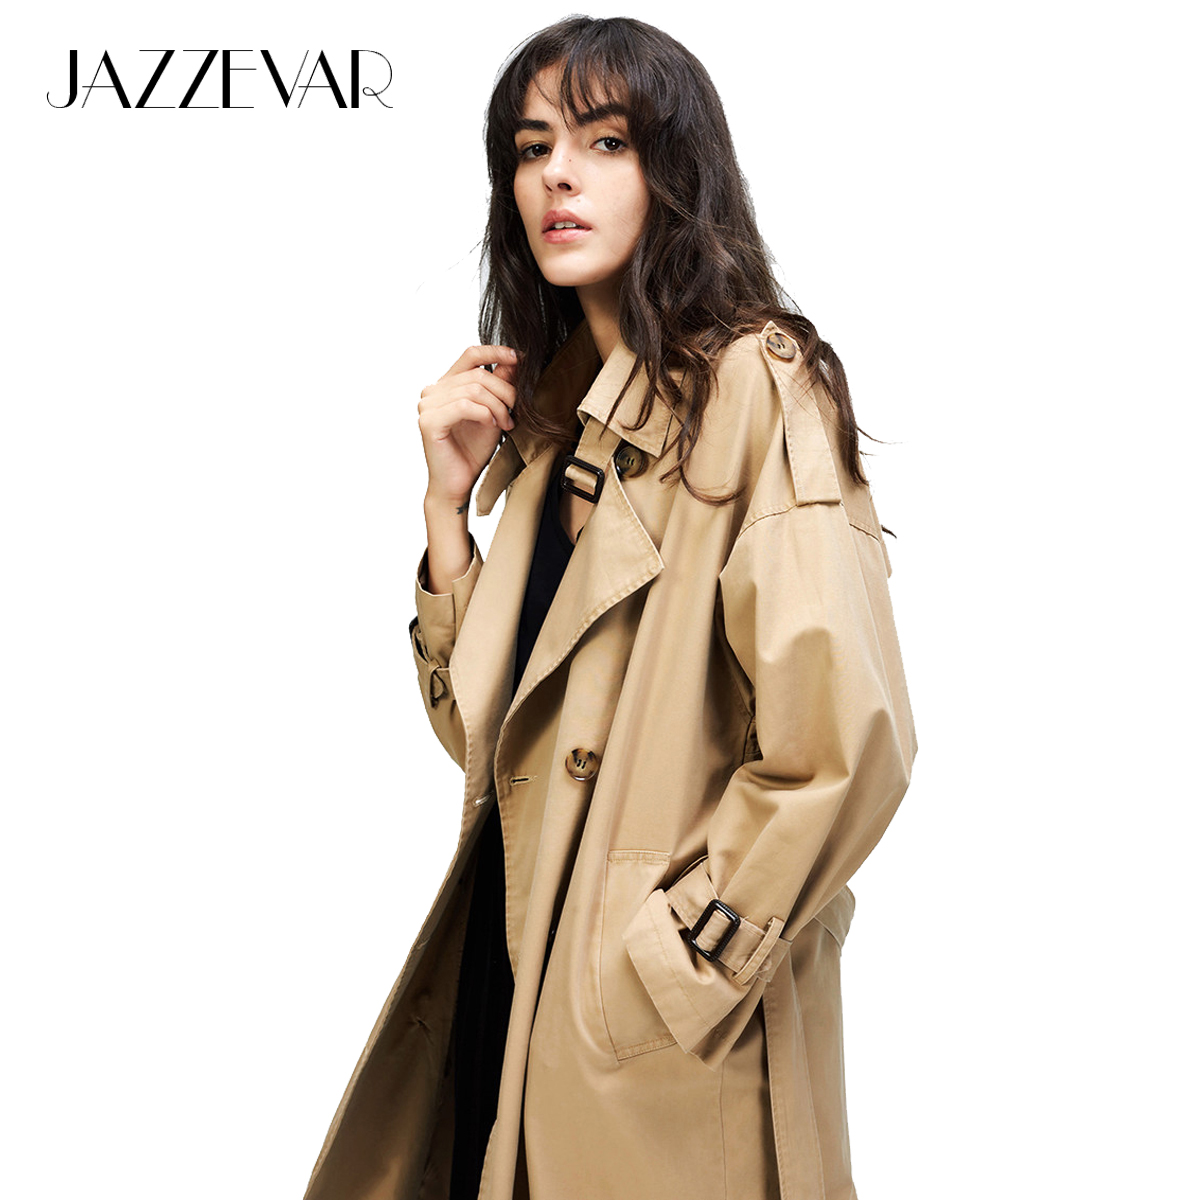 JAZZEVAR 2019 Autumn New Women's Casual trench coat oversize Double Breasted Vintage Washed Outwear Loose Clothing(China)